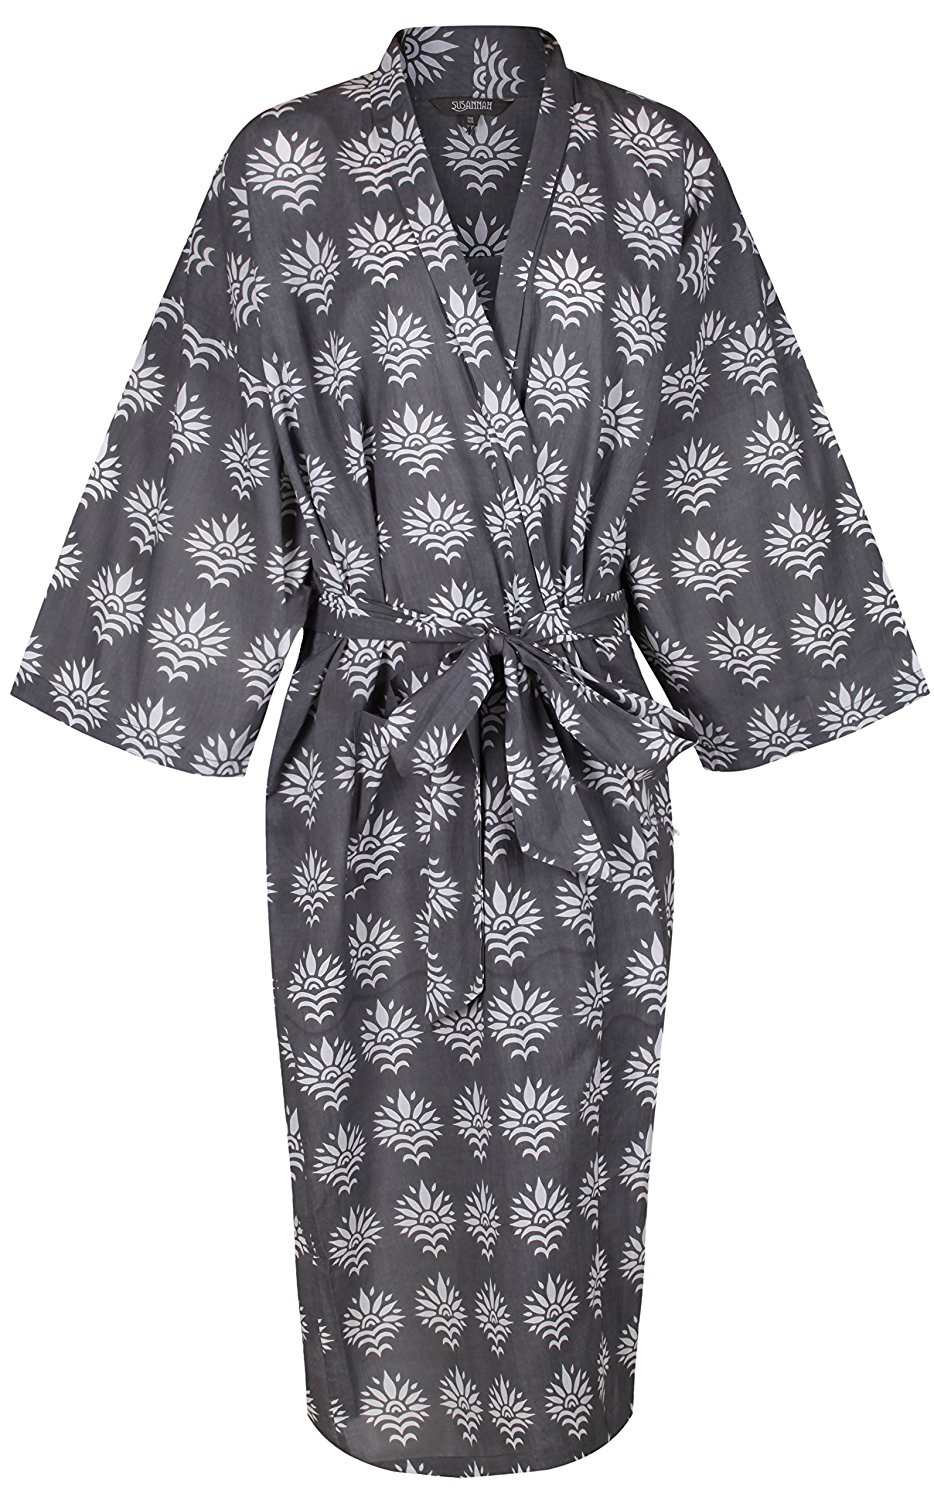 Get Quotations · Women s Kimono Cotton Robe Bathrobe Long Dressing Gown  Bridesmaid 100% Organic Lightweight Cotton  Gray e680193d8